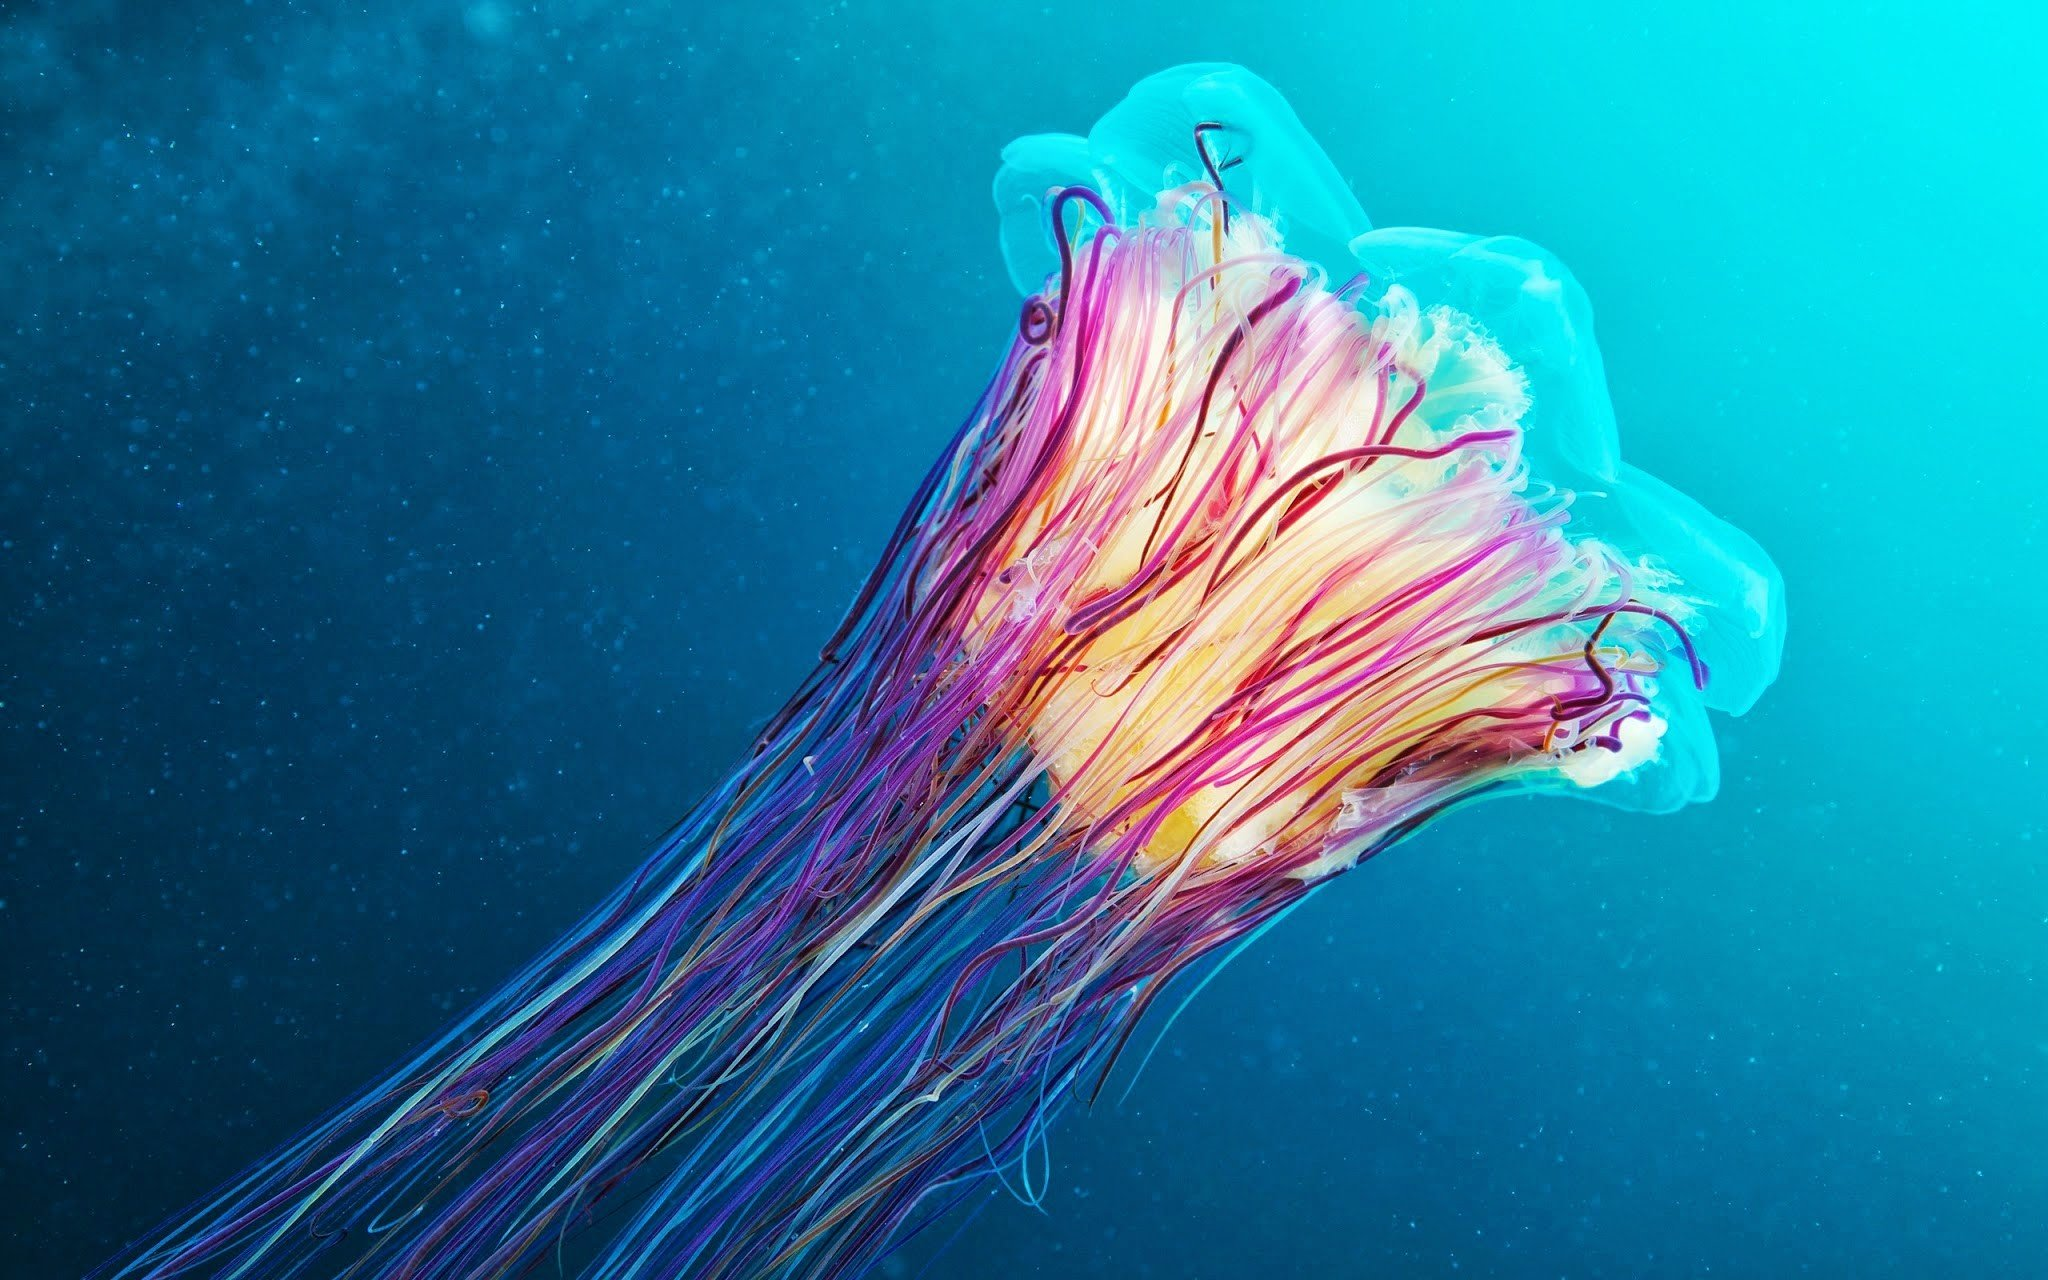 Underwater medusa jellyfish hd wallpapers desktop and - Jellyfish hd images ...